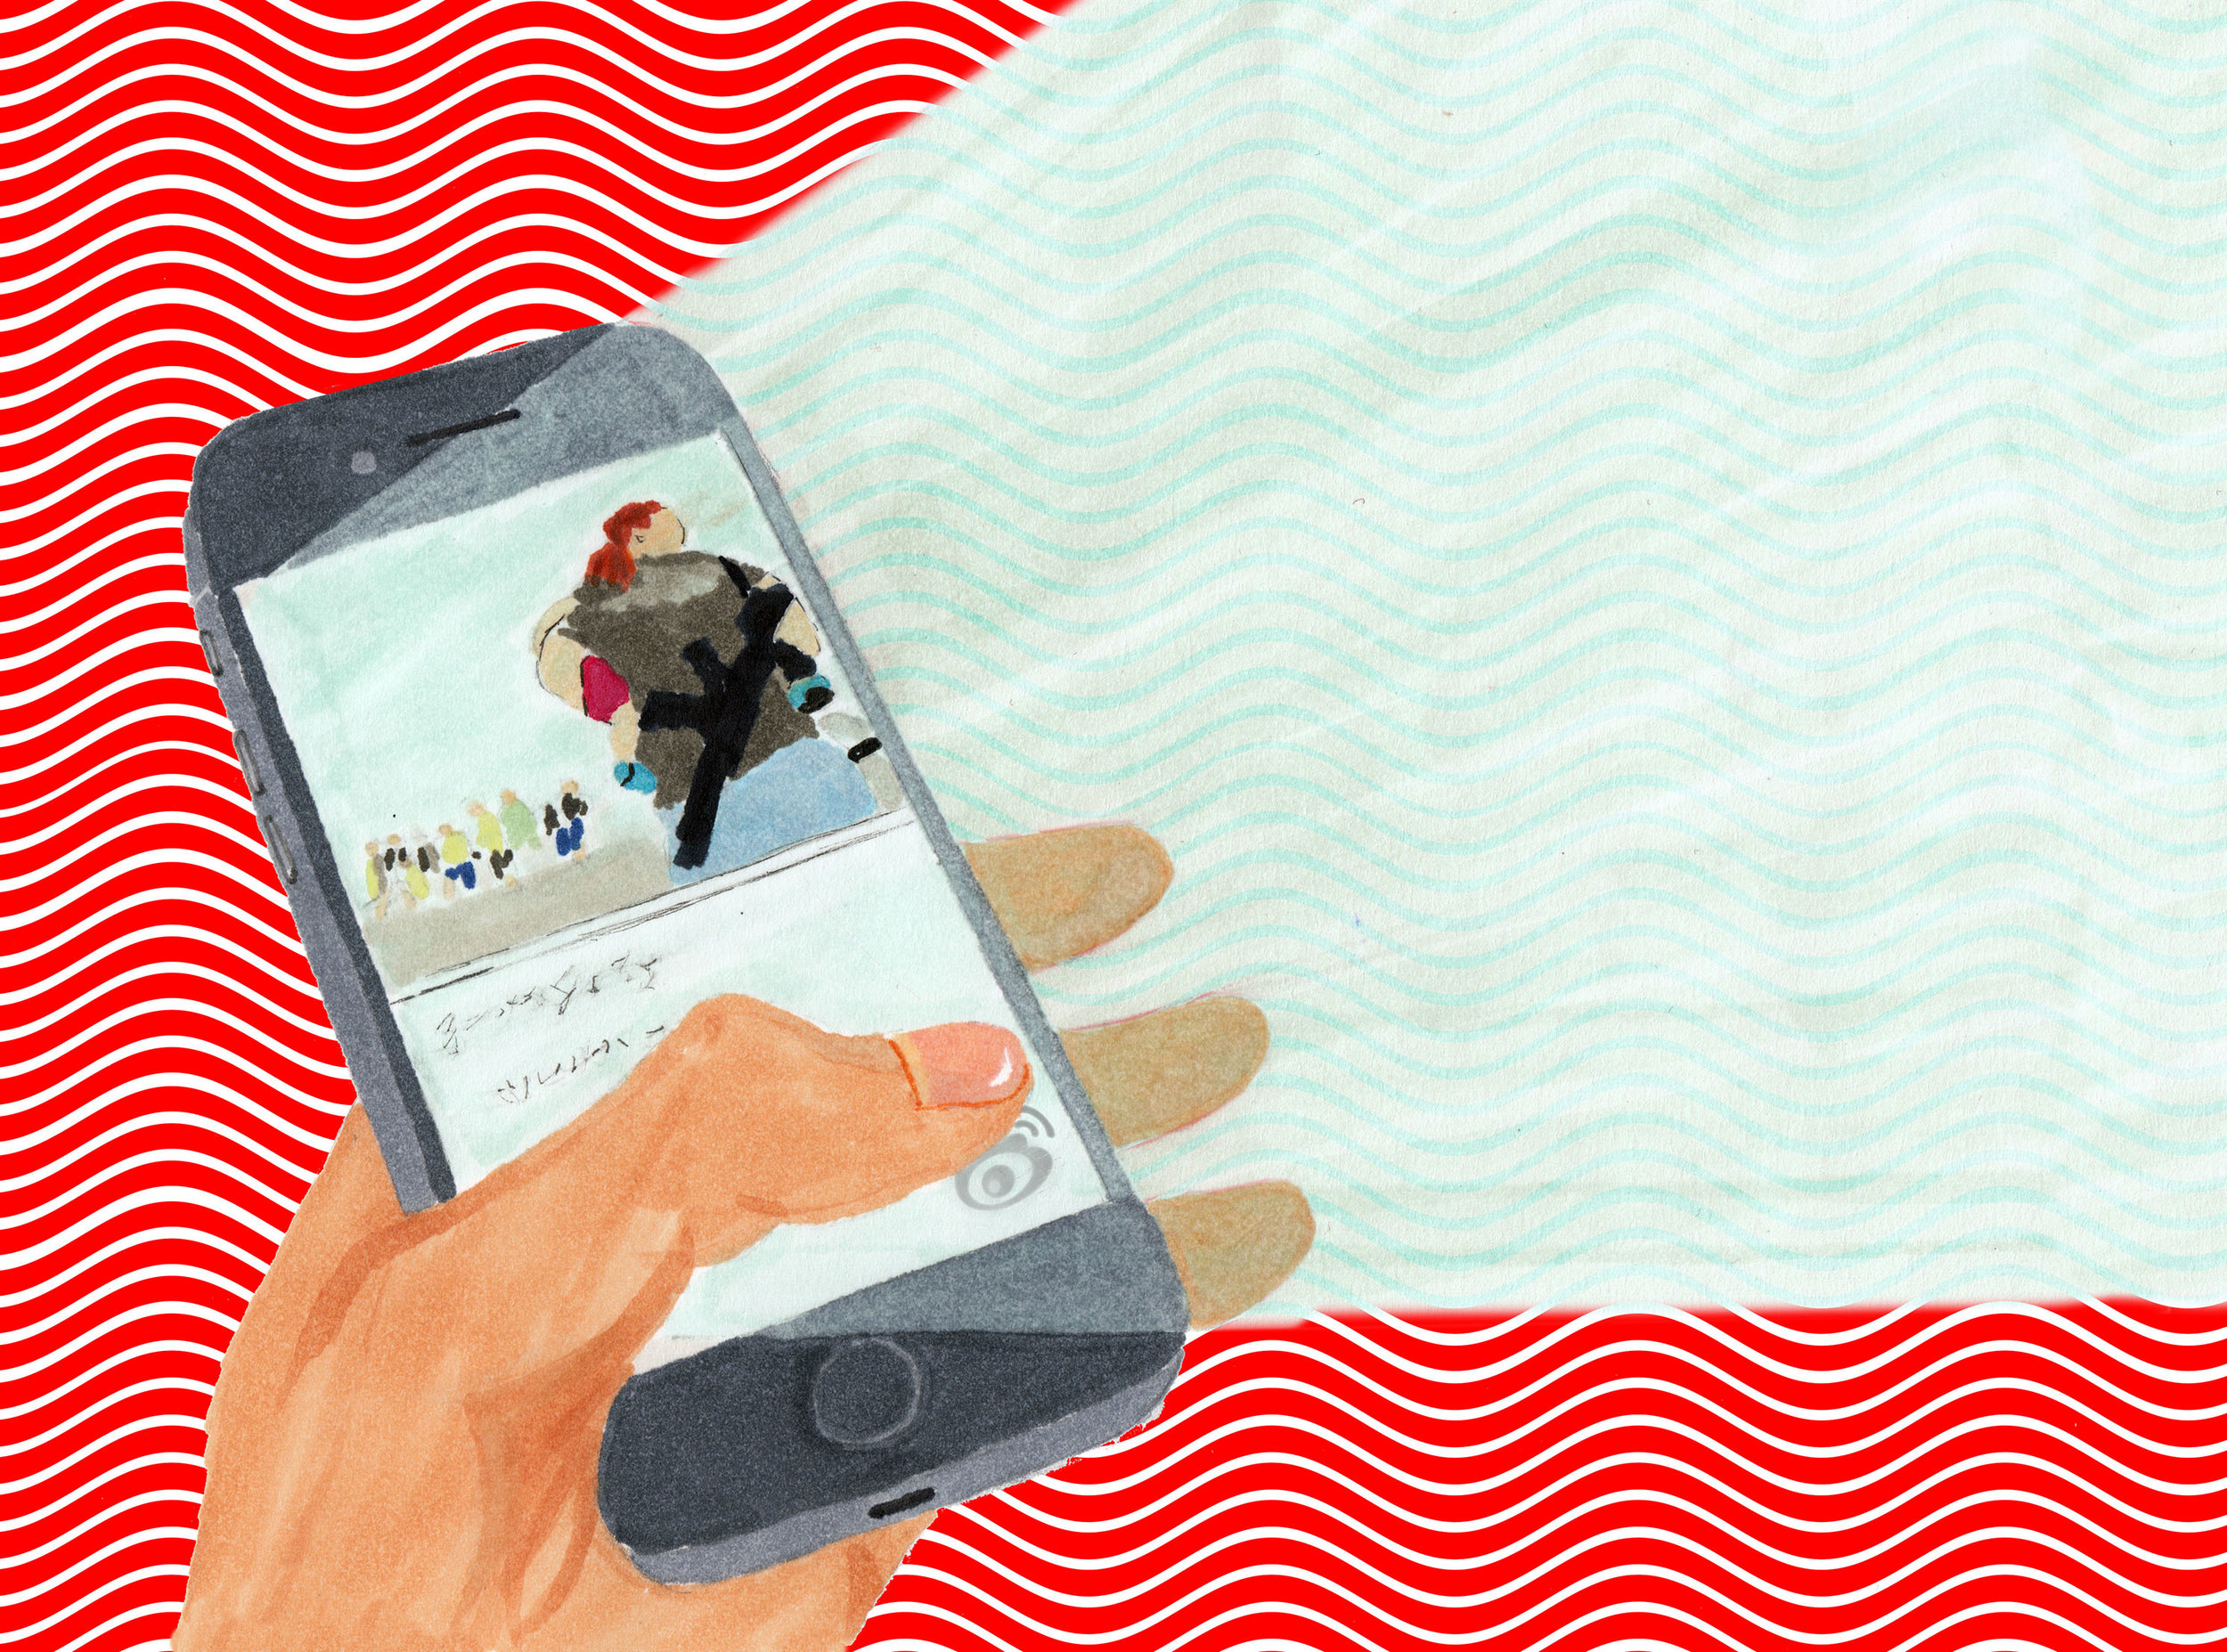 An illustration by Hannah Bae on the spread of misinformation via Chinese social networks